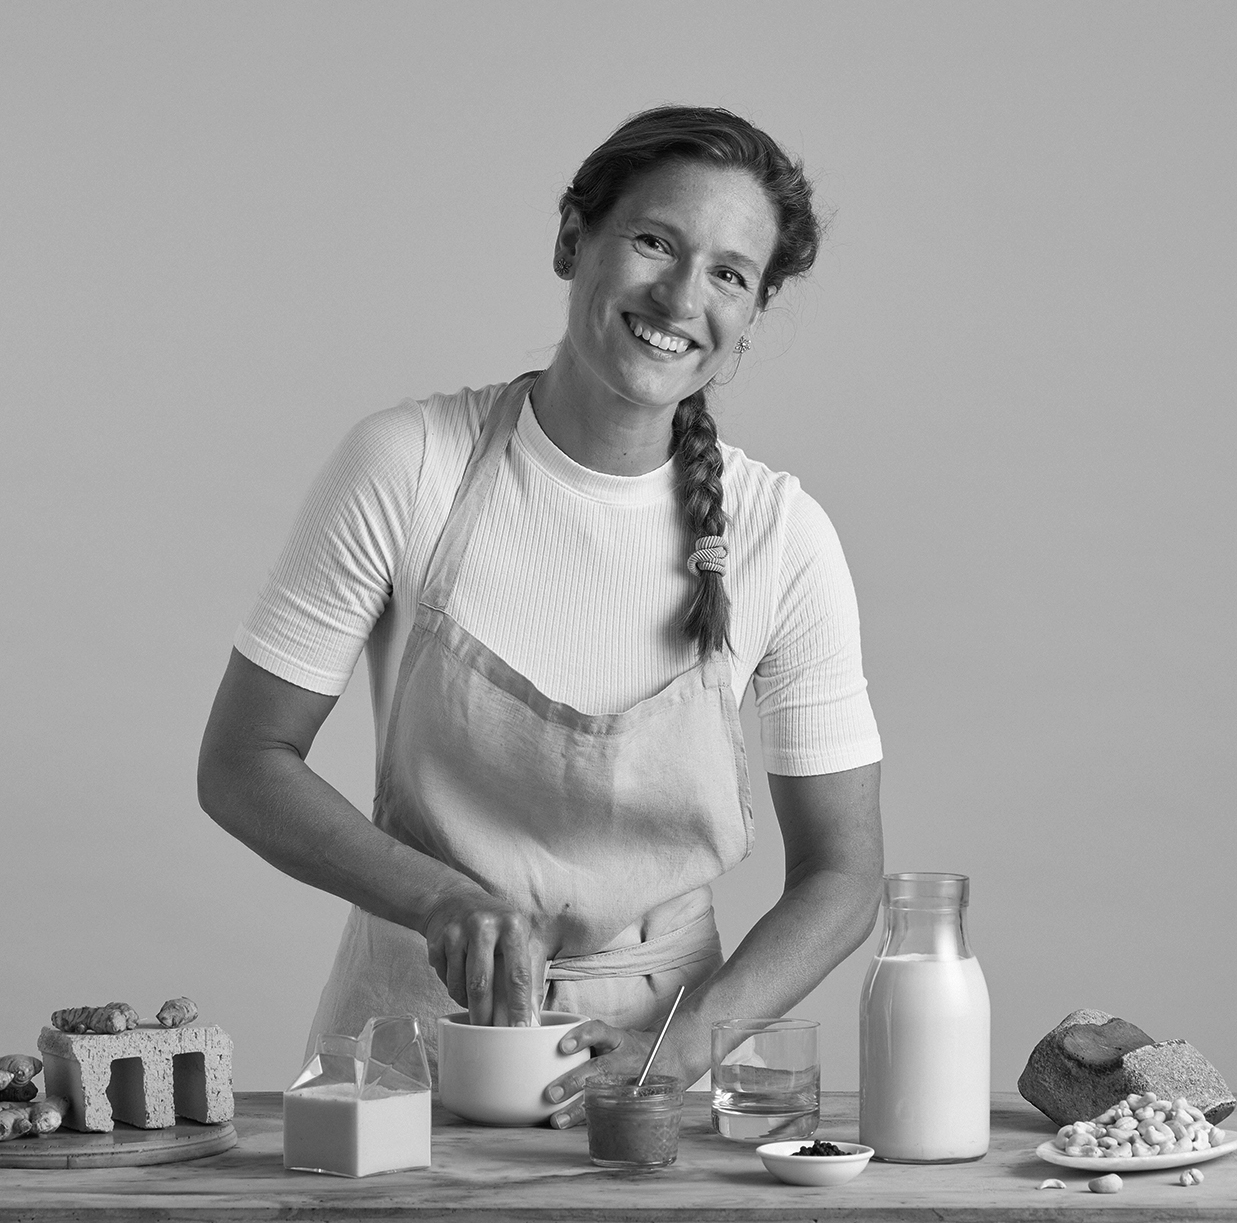 Cooking Demo: How to Add Immune-Boosting Ingredients into Your Meals